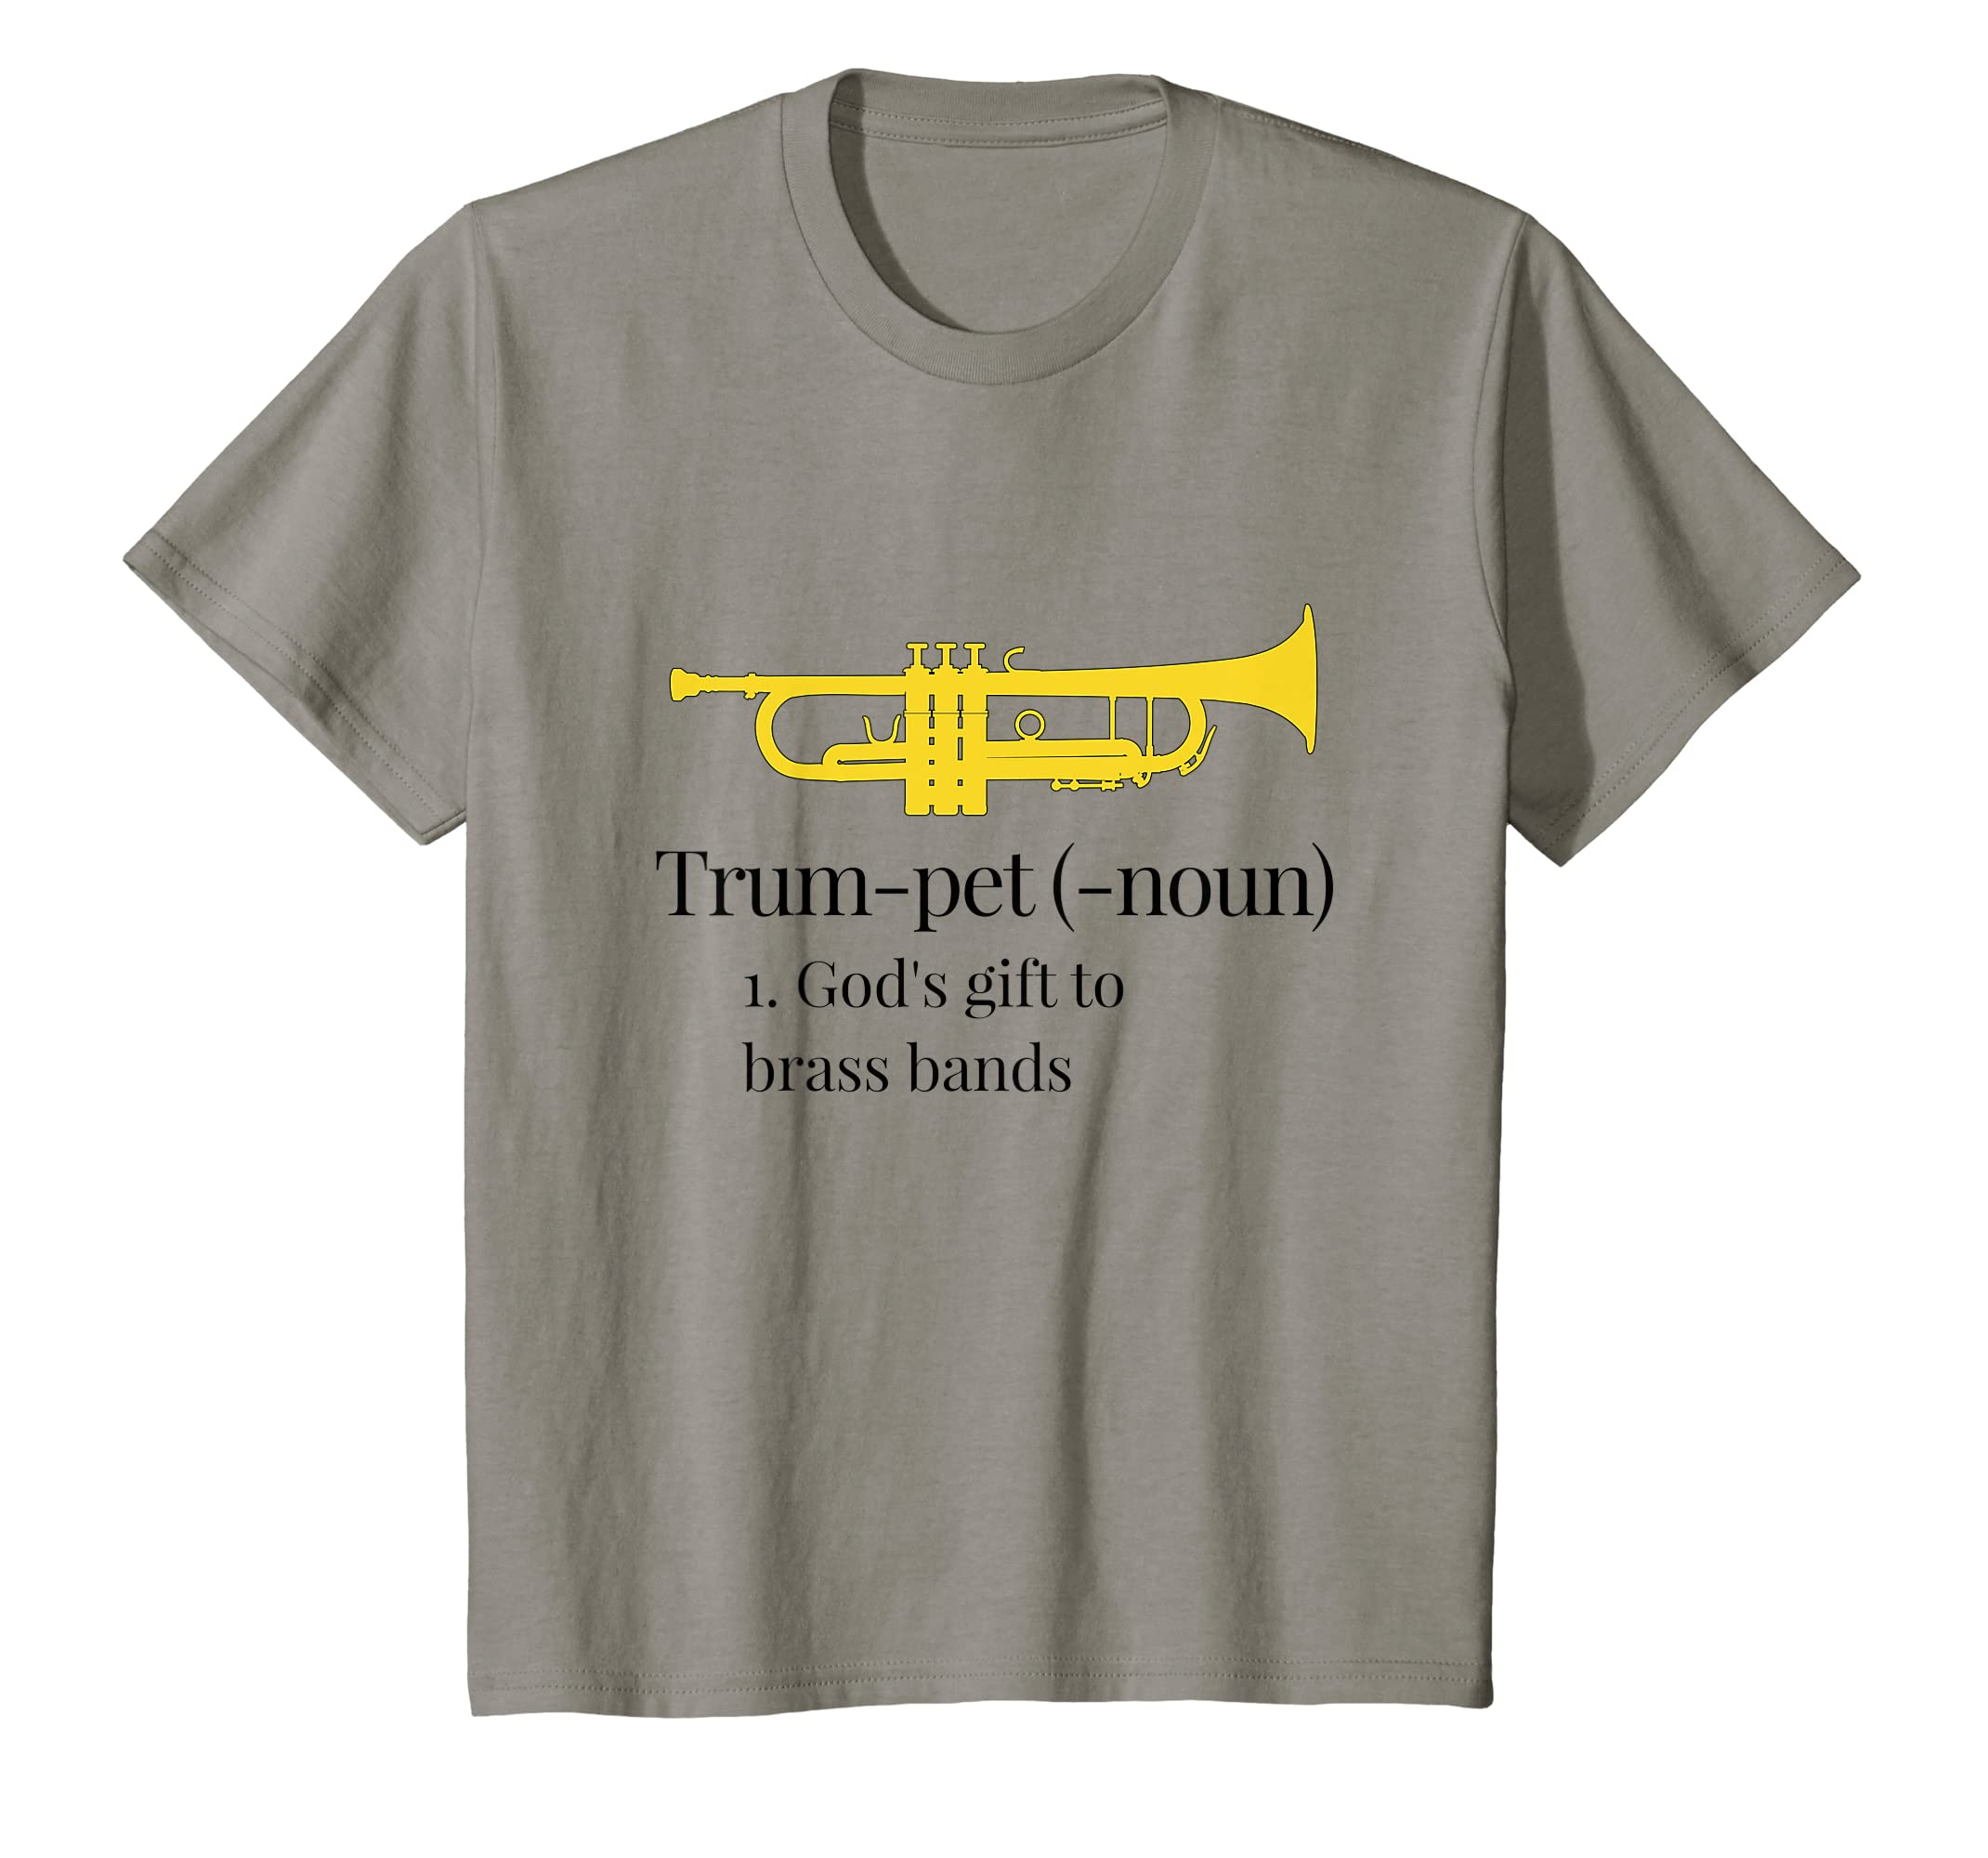 8a4854a2 Amazon.com: Funny Trumpet T-Shirt God's gift to brass bands: Clothing